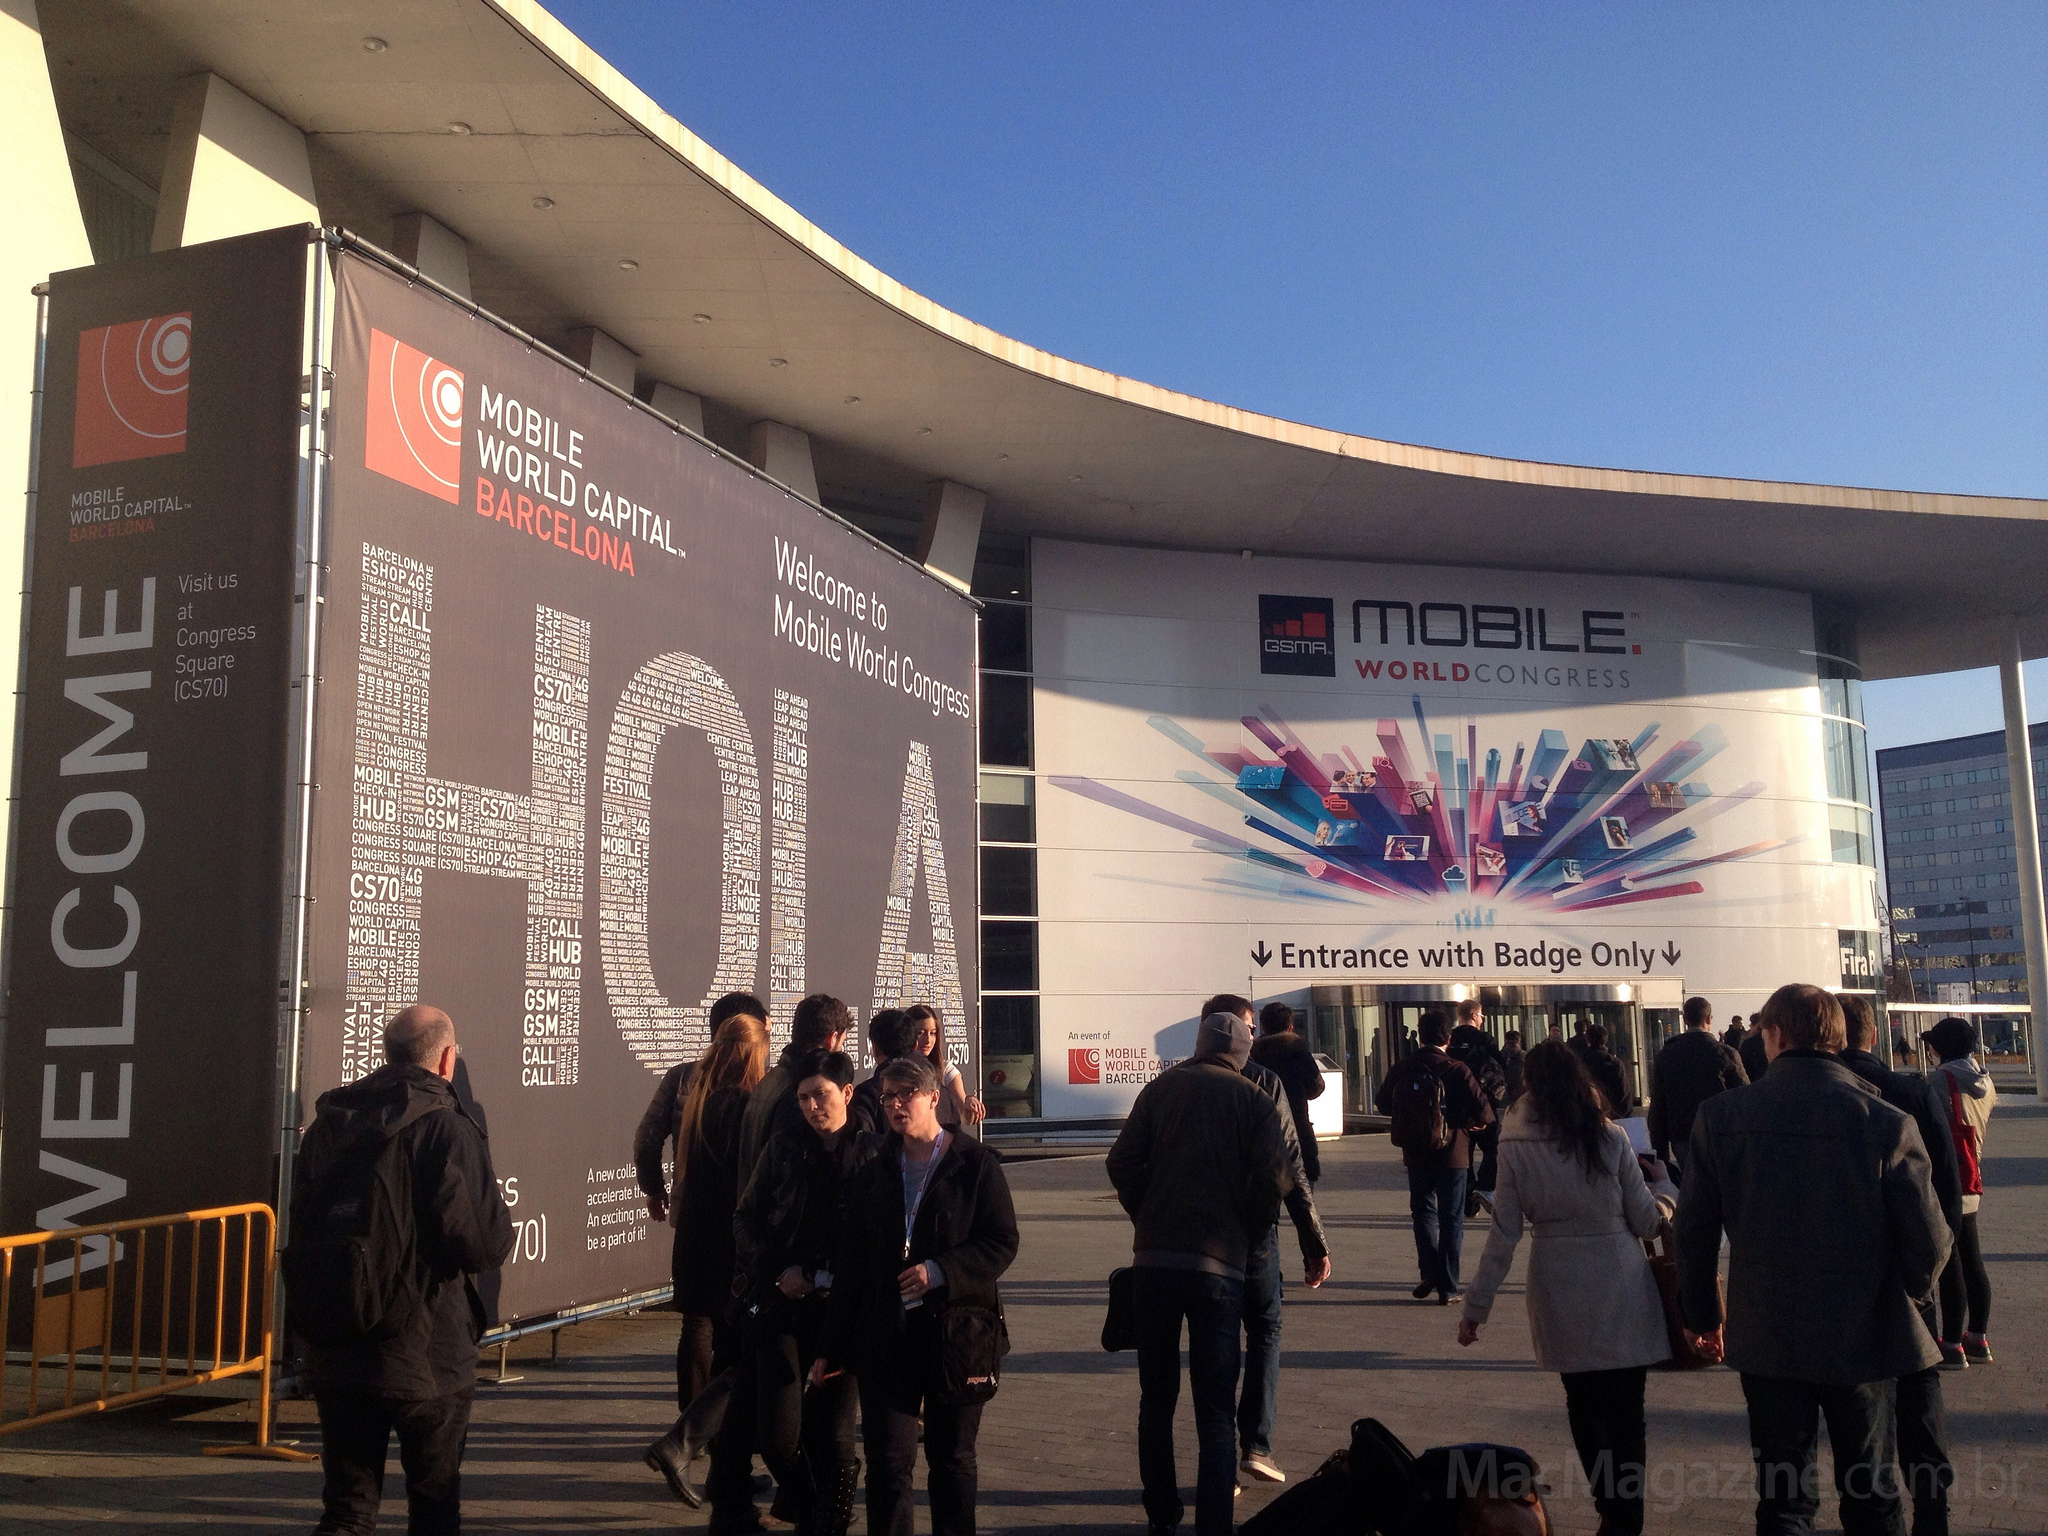 MacMagazine no Mobile World Congress 2013